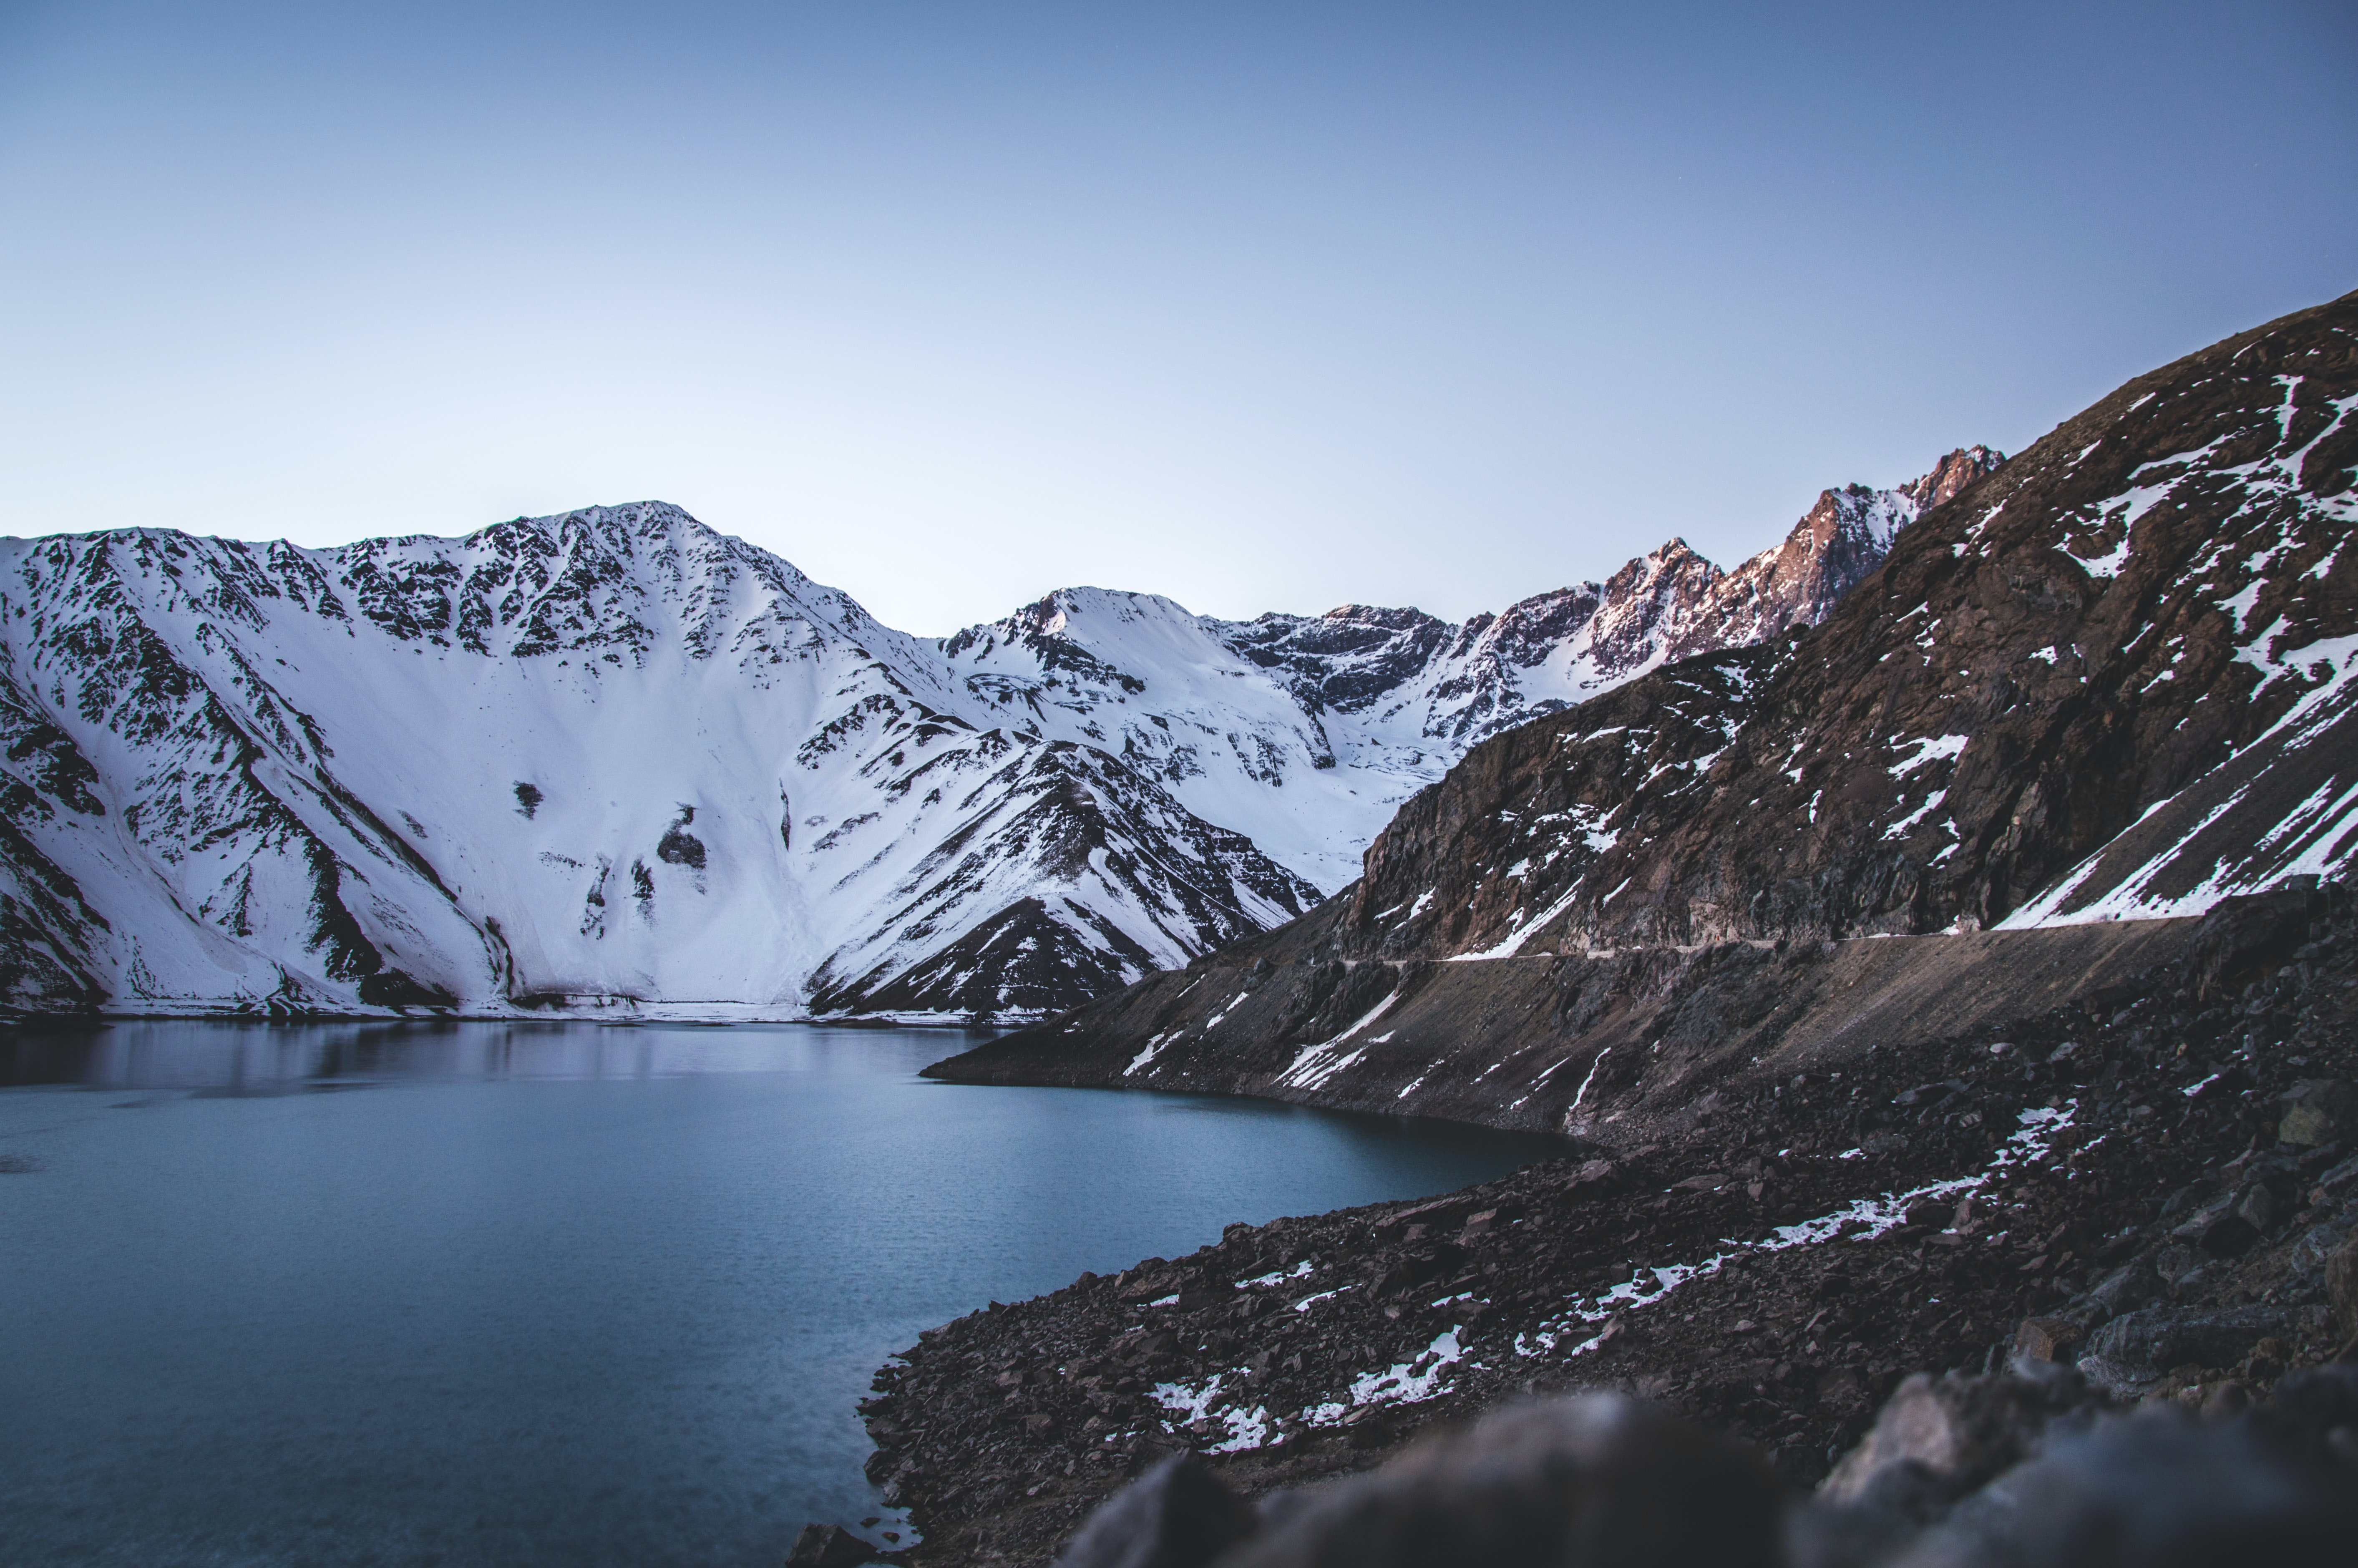 Snow covered mountains surround a blue lake in El Yeso Dam.